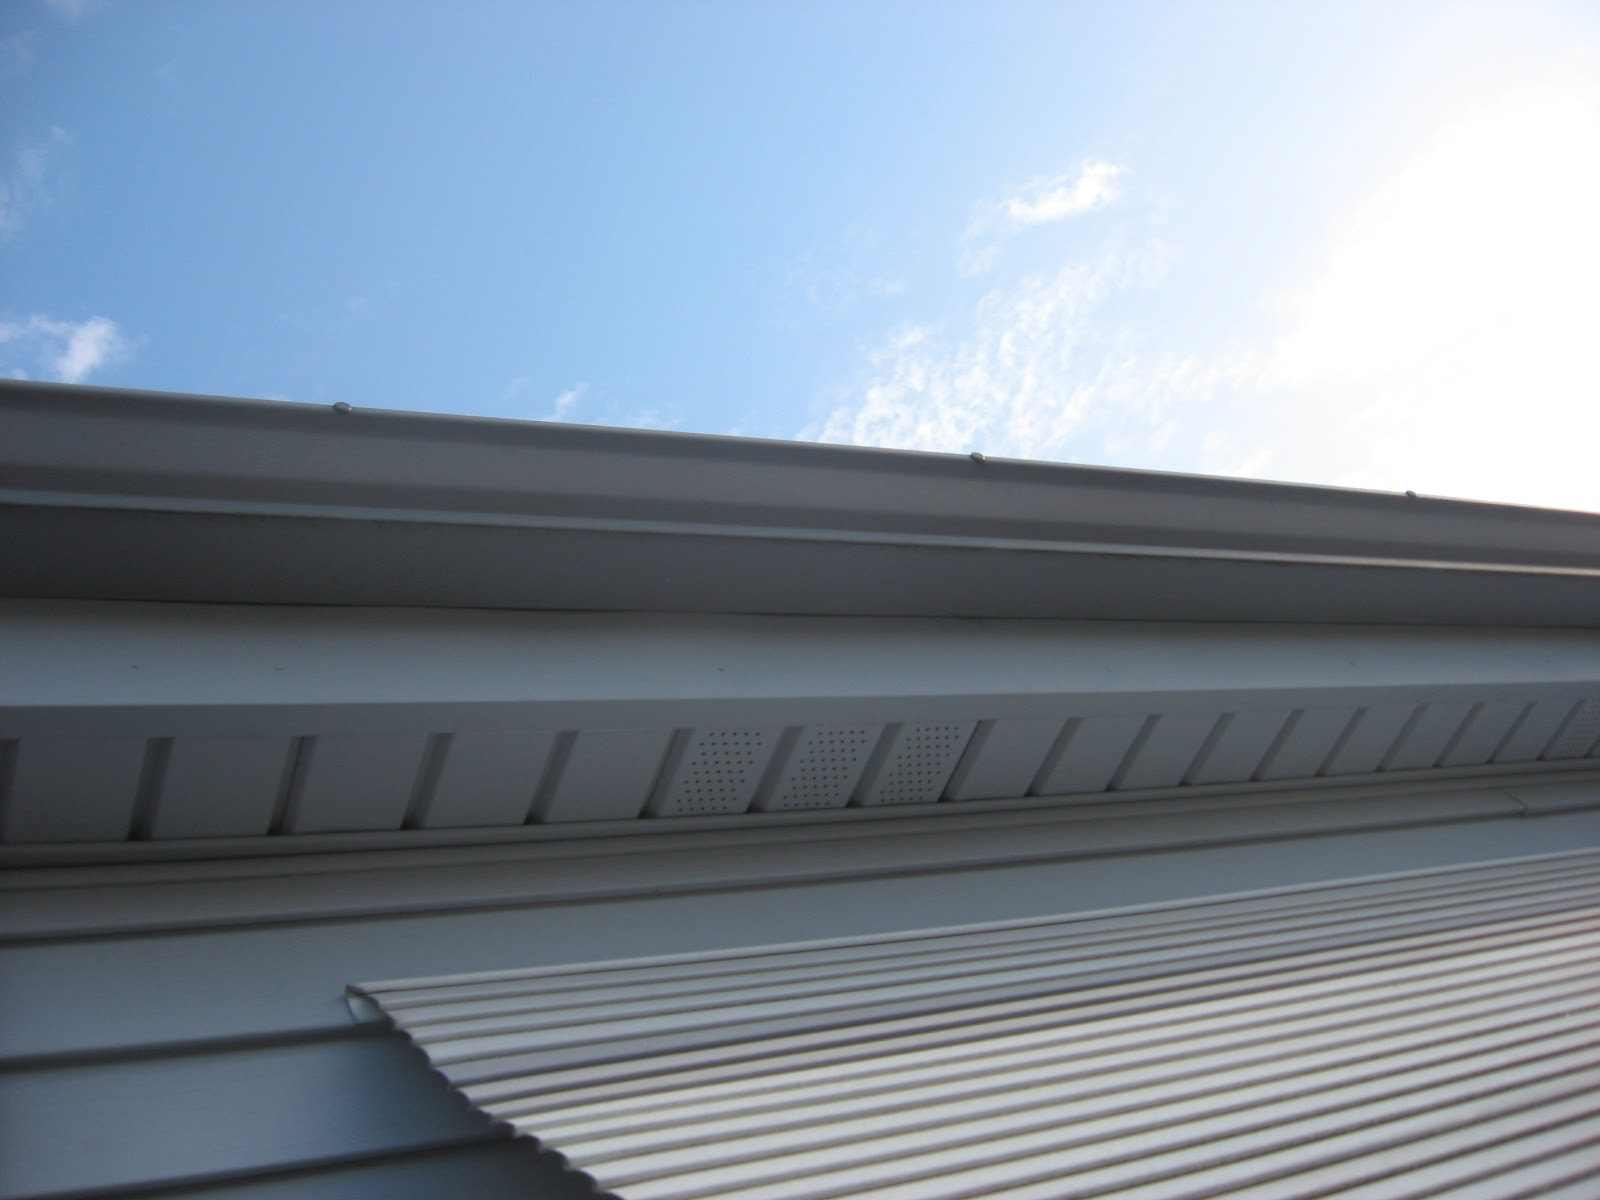 A Residence Attic Ventilation Review